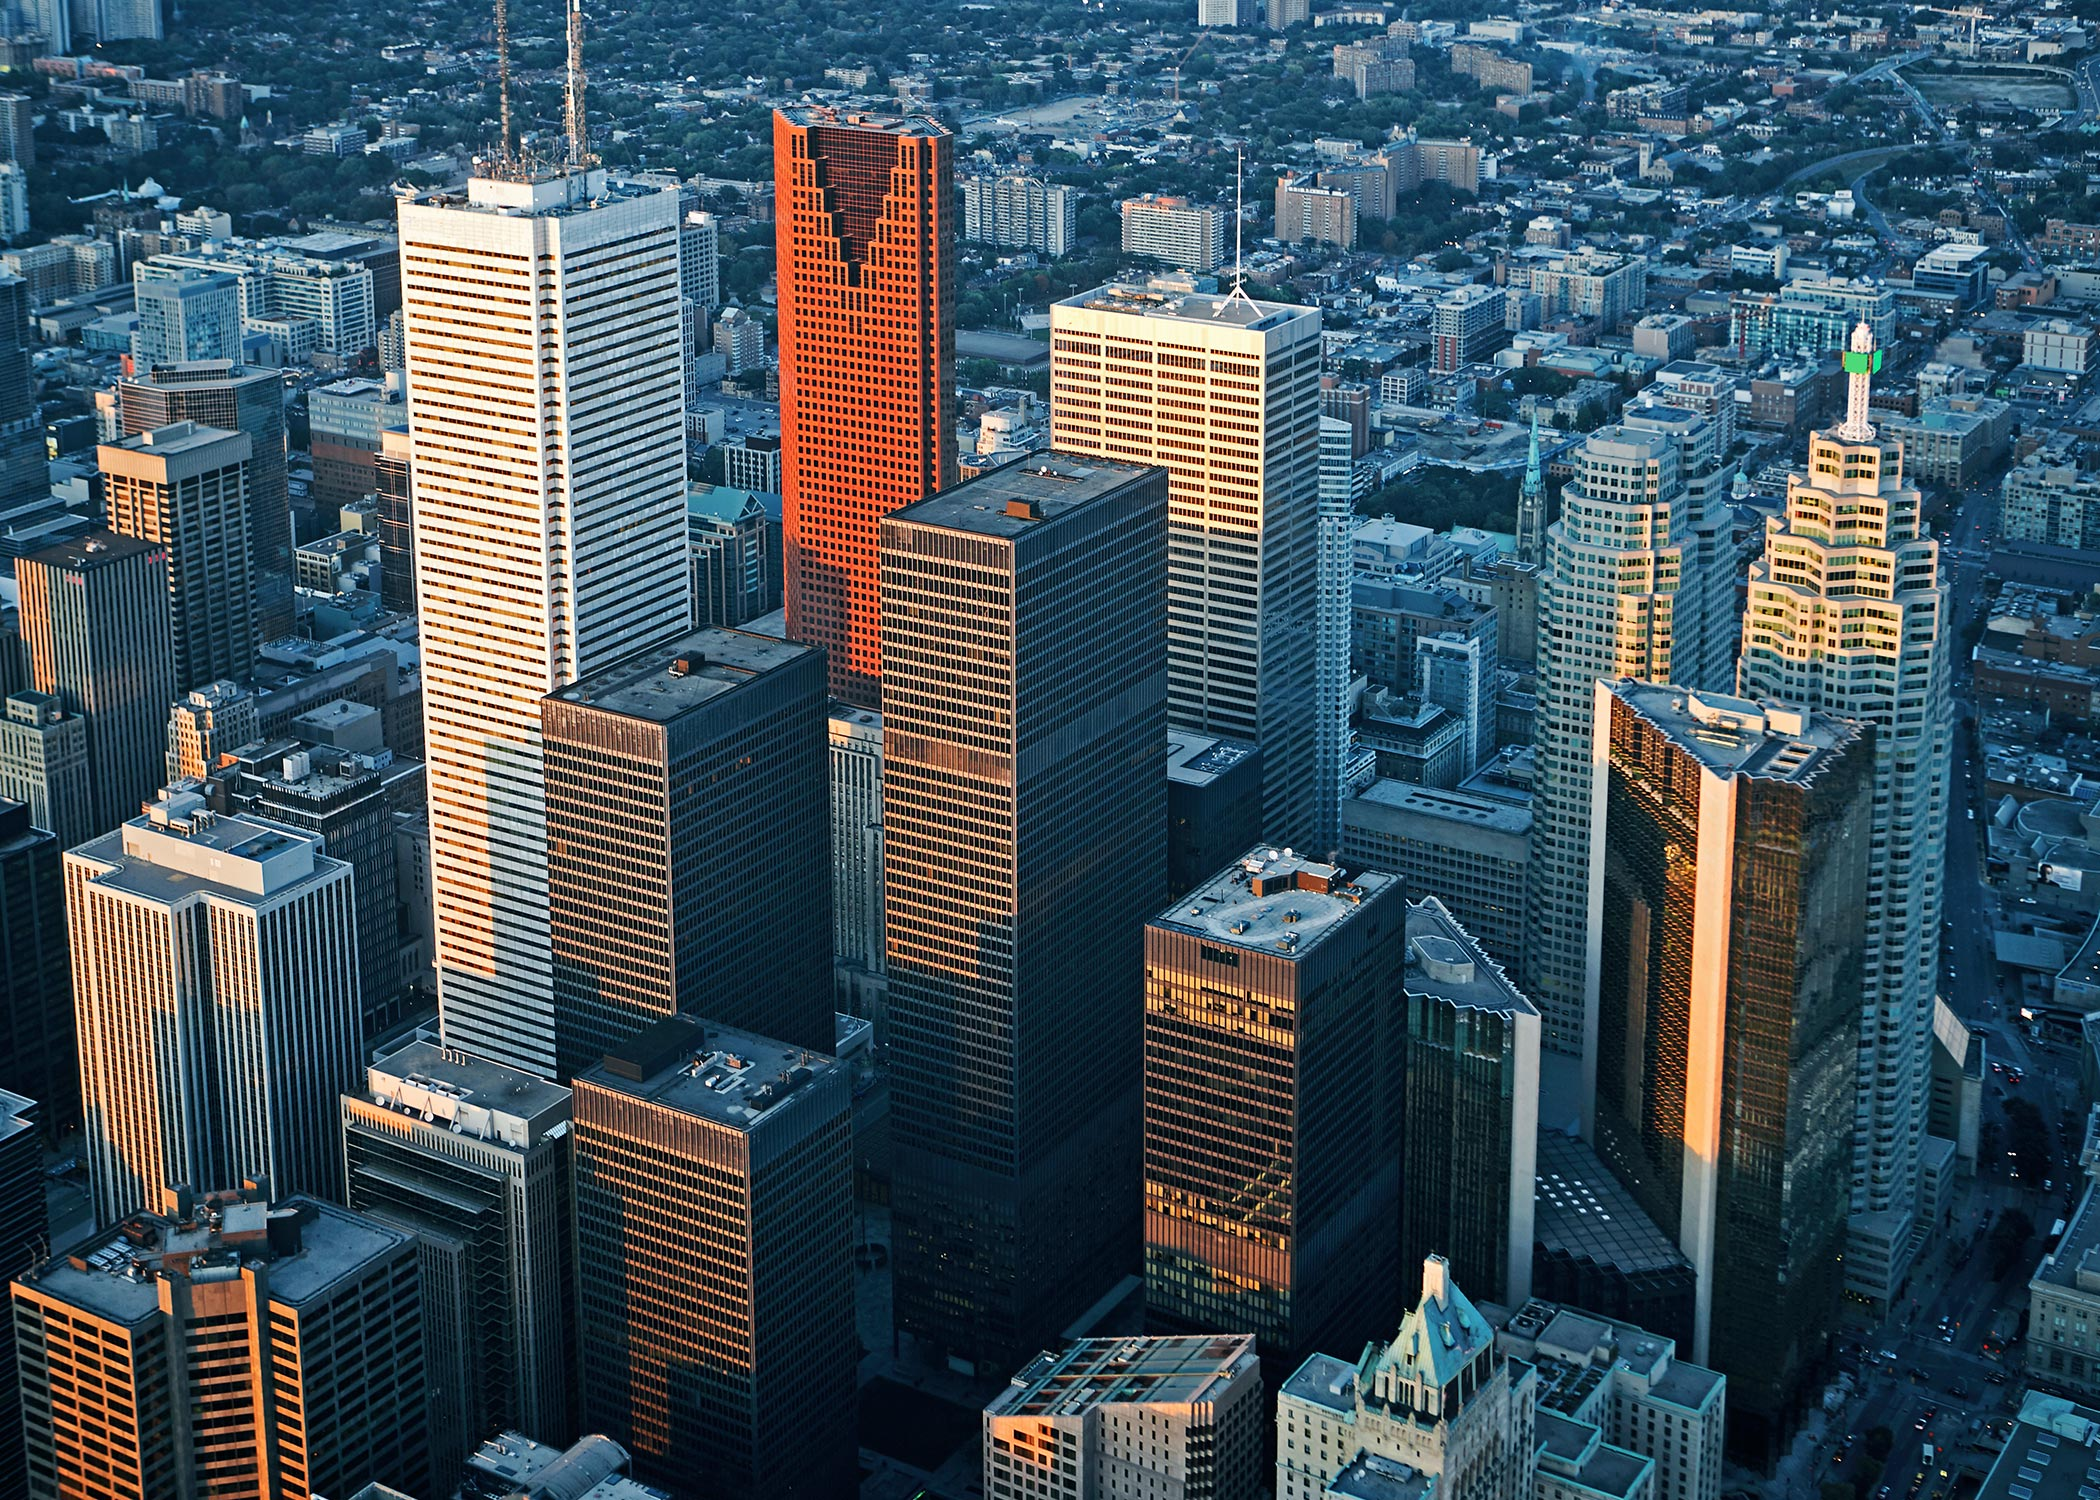 aerial view of tall business skyscrapers in downtown toronto